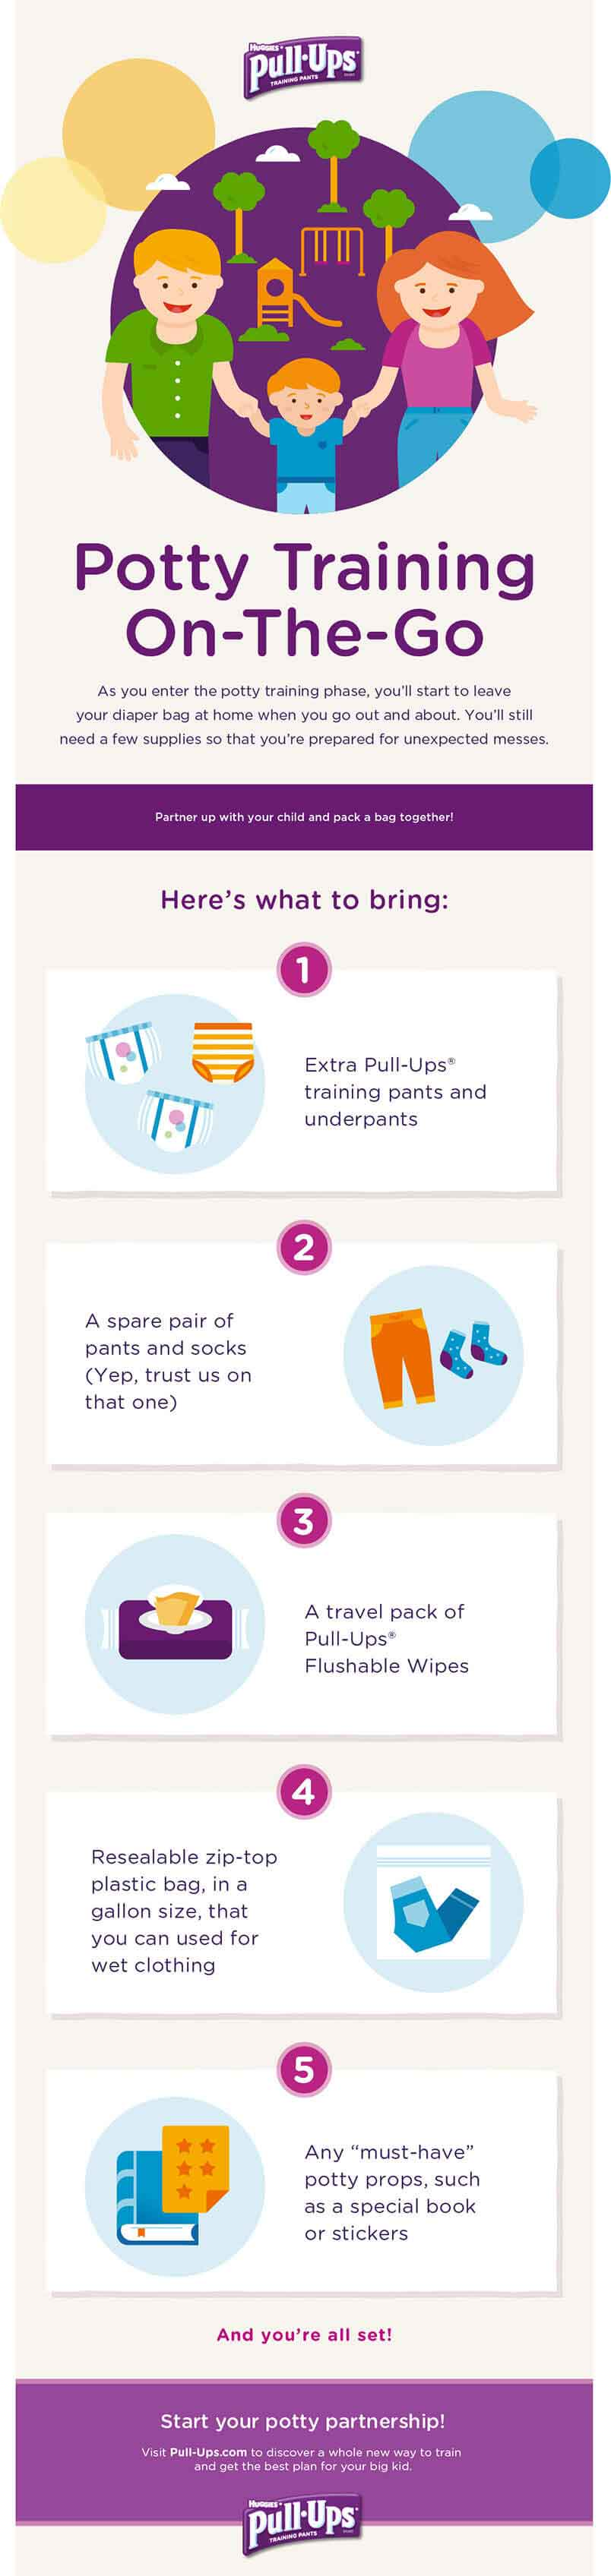 Potty Training Checklist